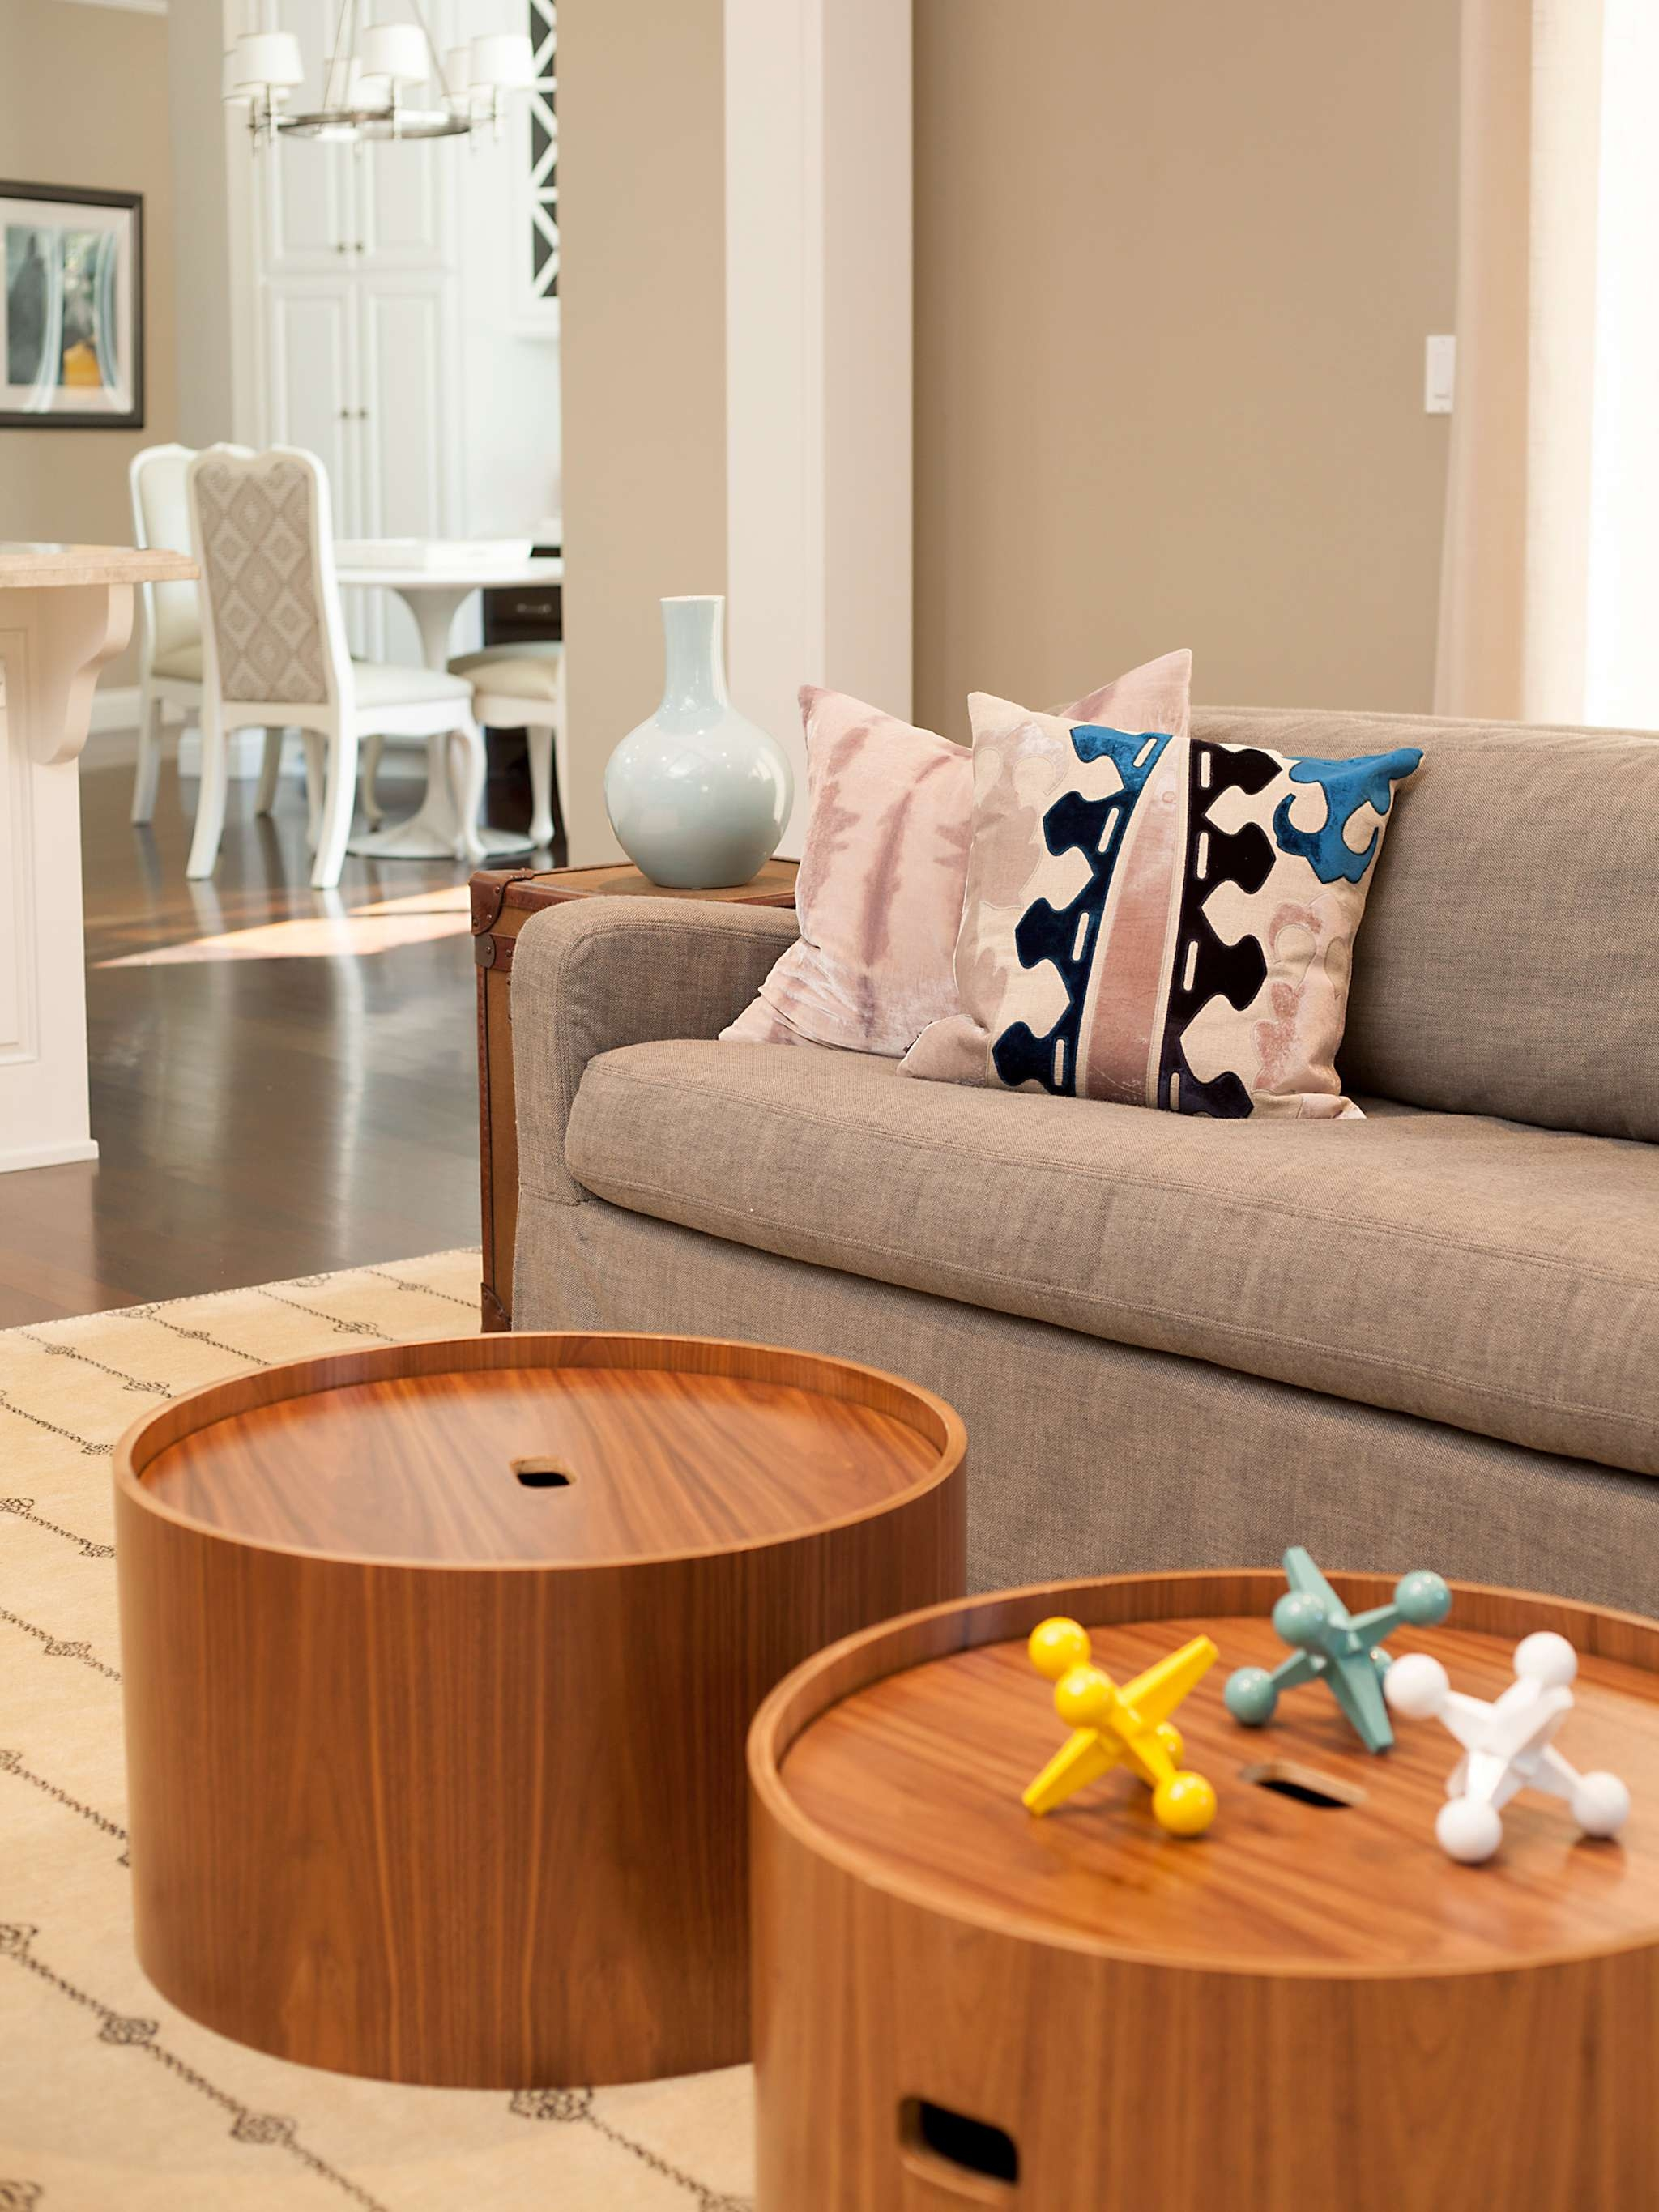 Round Coffee Table: Amazing Round Coffee Table With Storage Within Trendy Round Storage Coffee Tables (View 14 of 20)